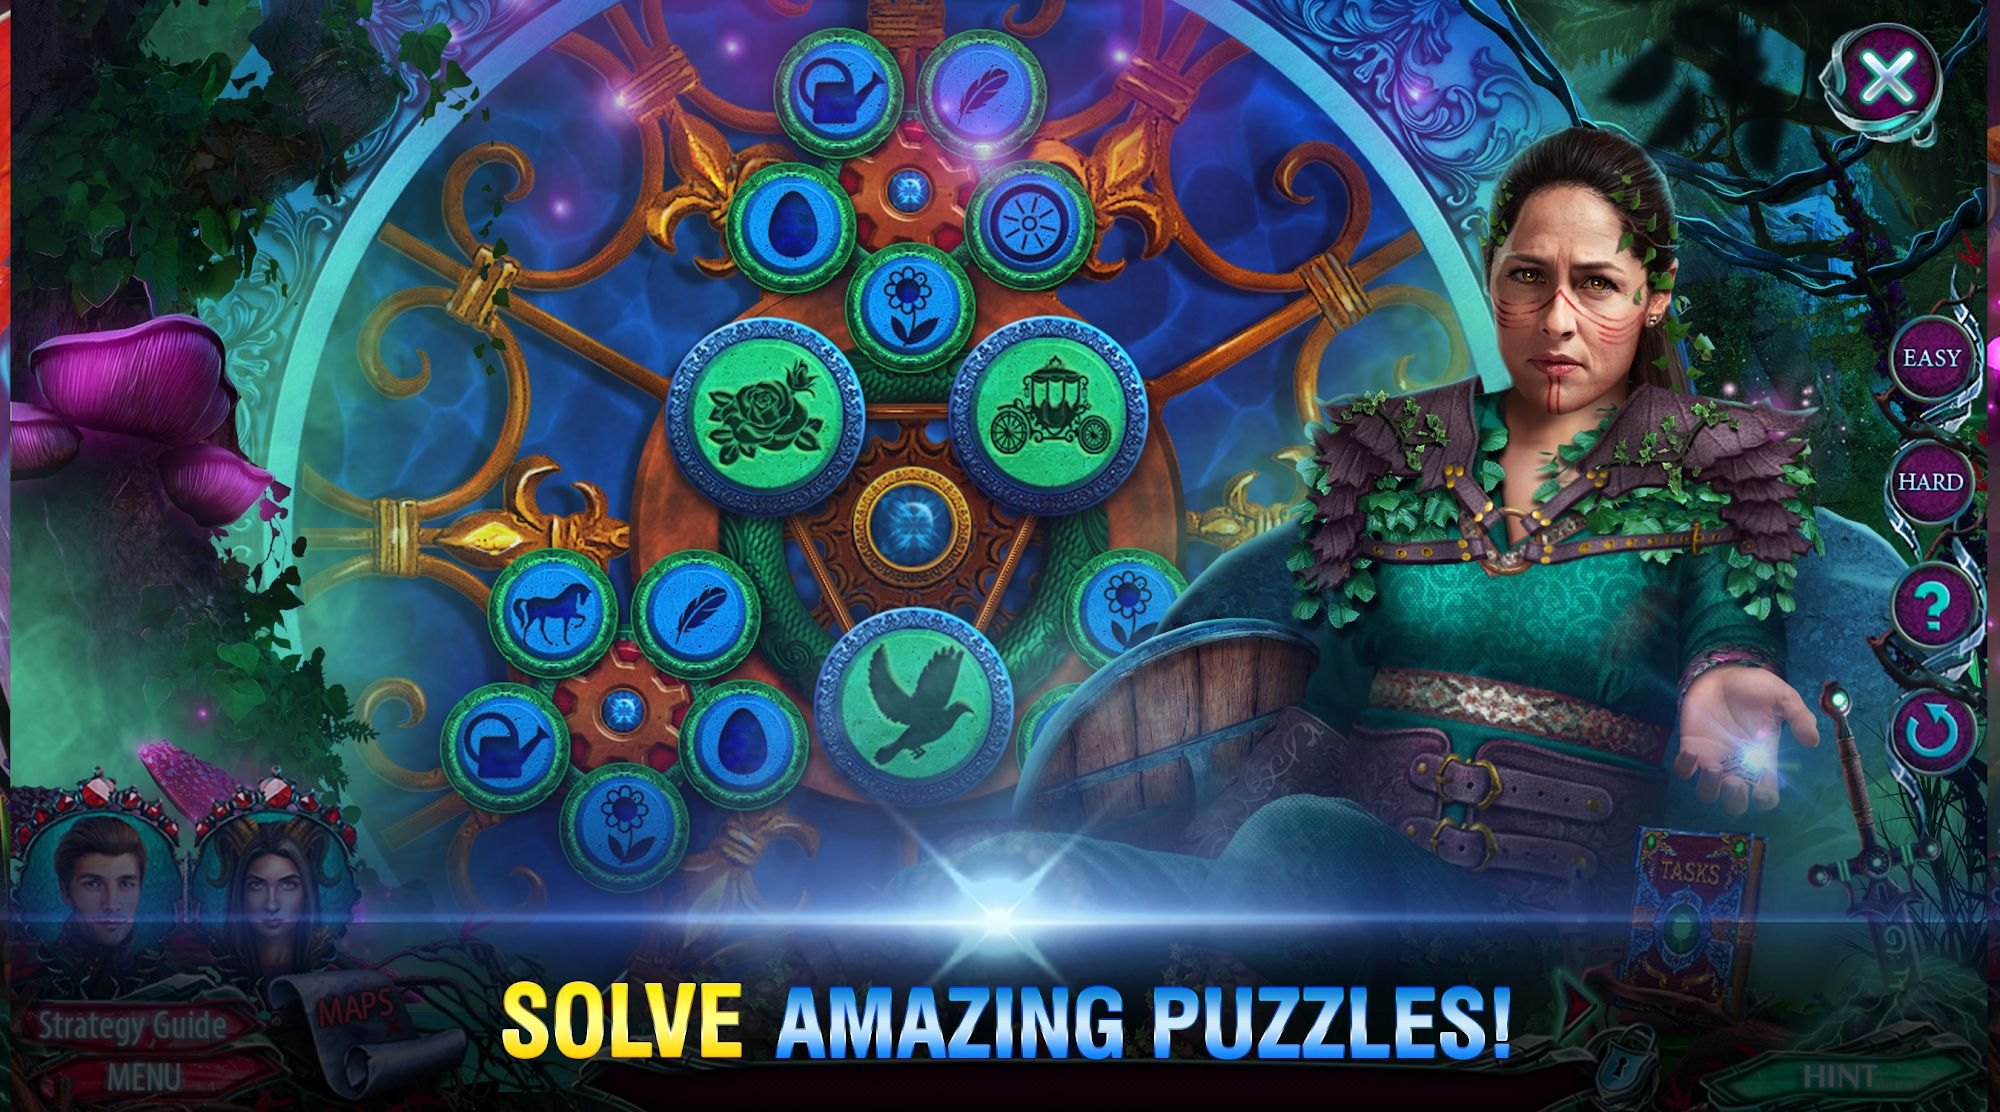 Hidden Object - Dark Romance: Ethereal Gardens for Android